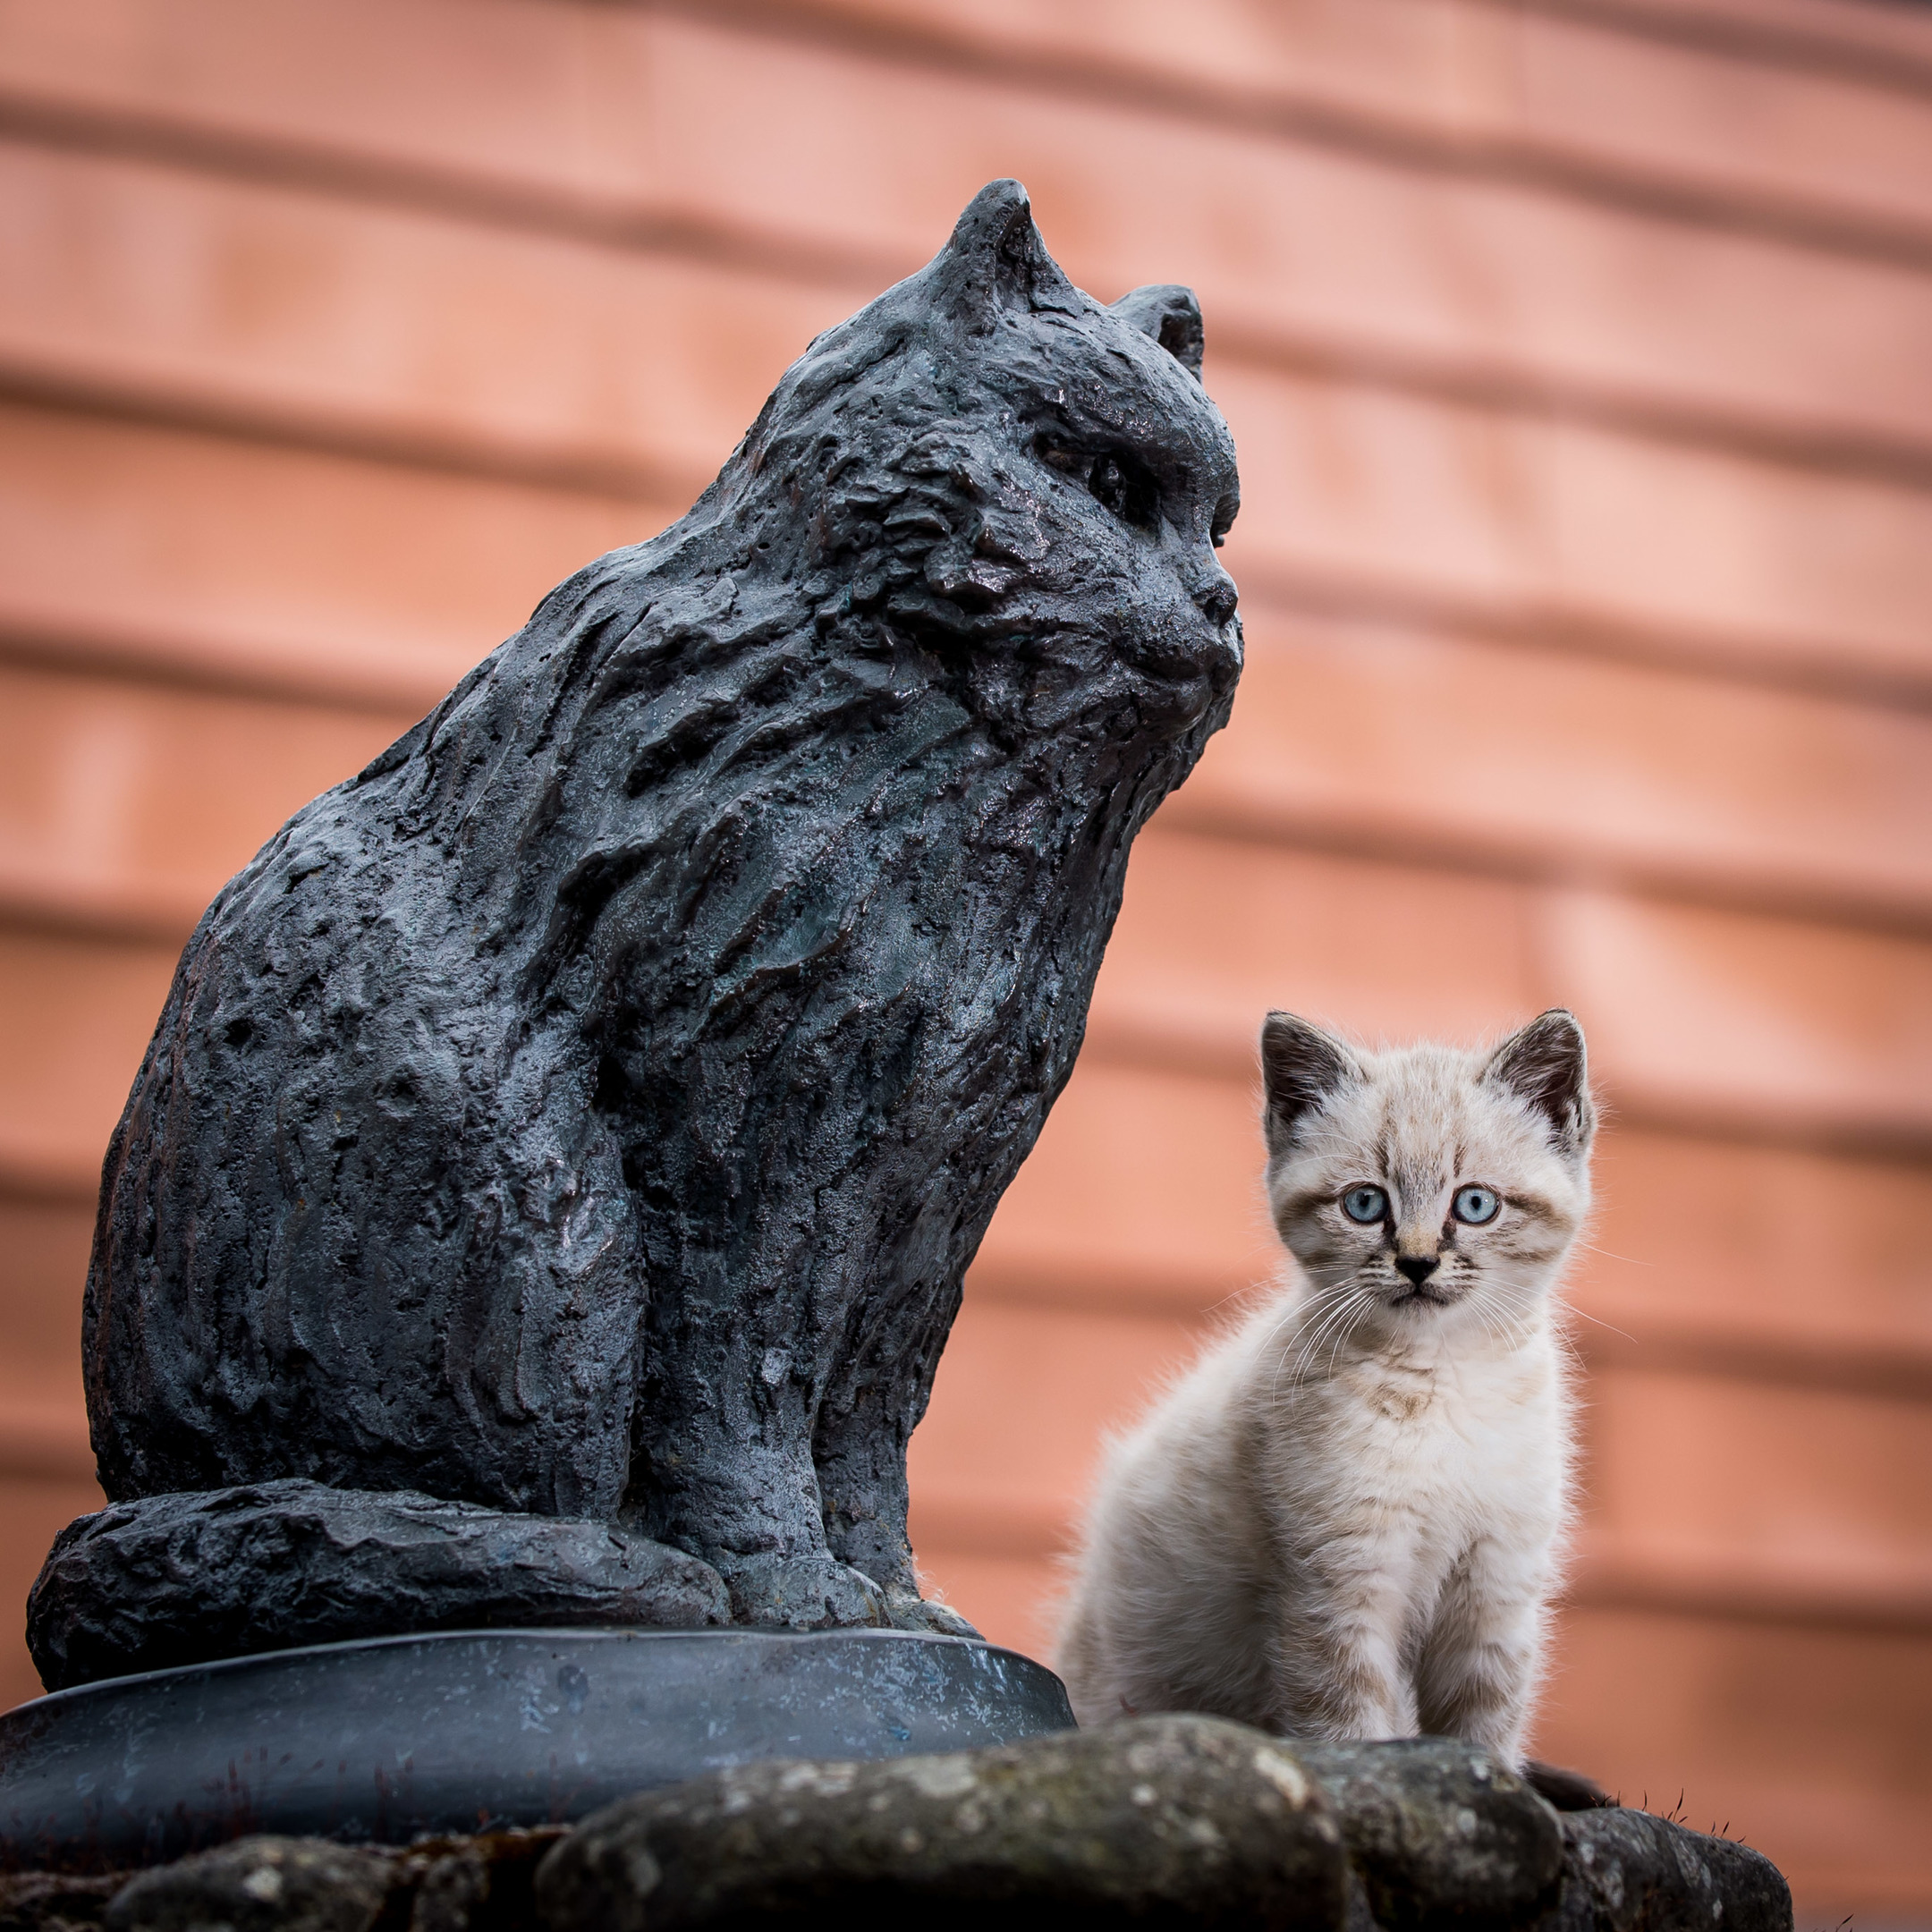 Eight-week old Peat will follow in the footsteps of the distillery's legendary mouser, Towser, who caught 28,899 mice in her 24 years at the distillery